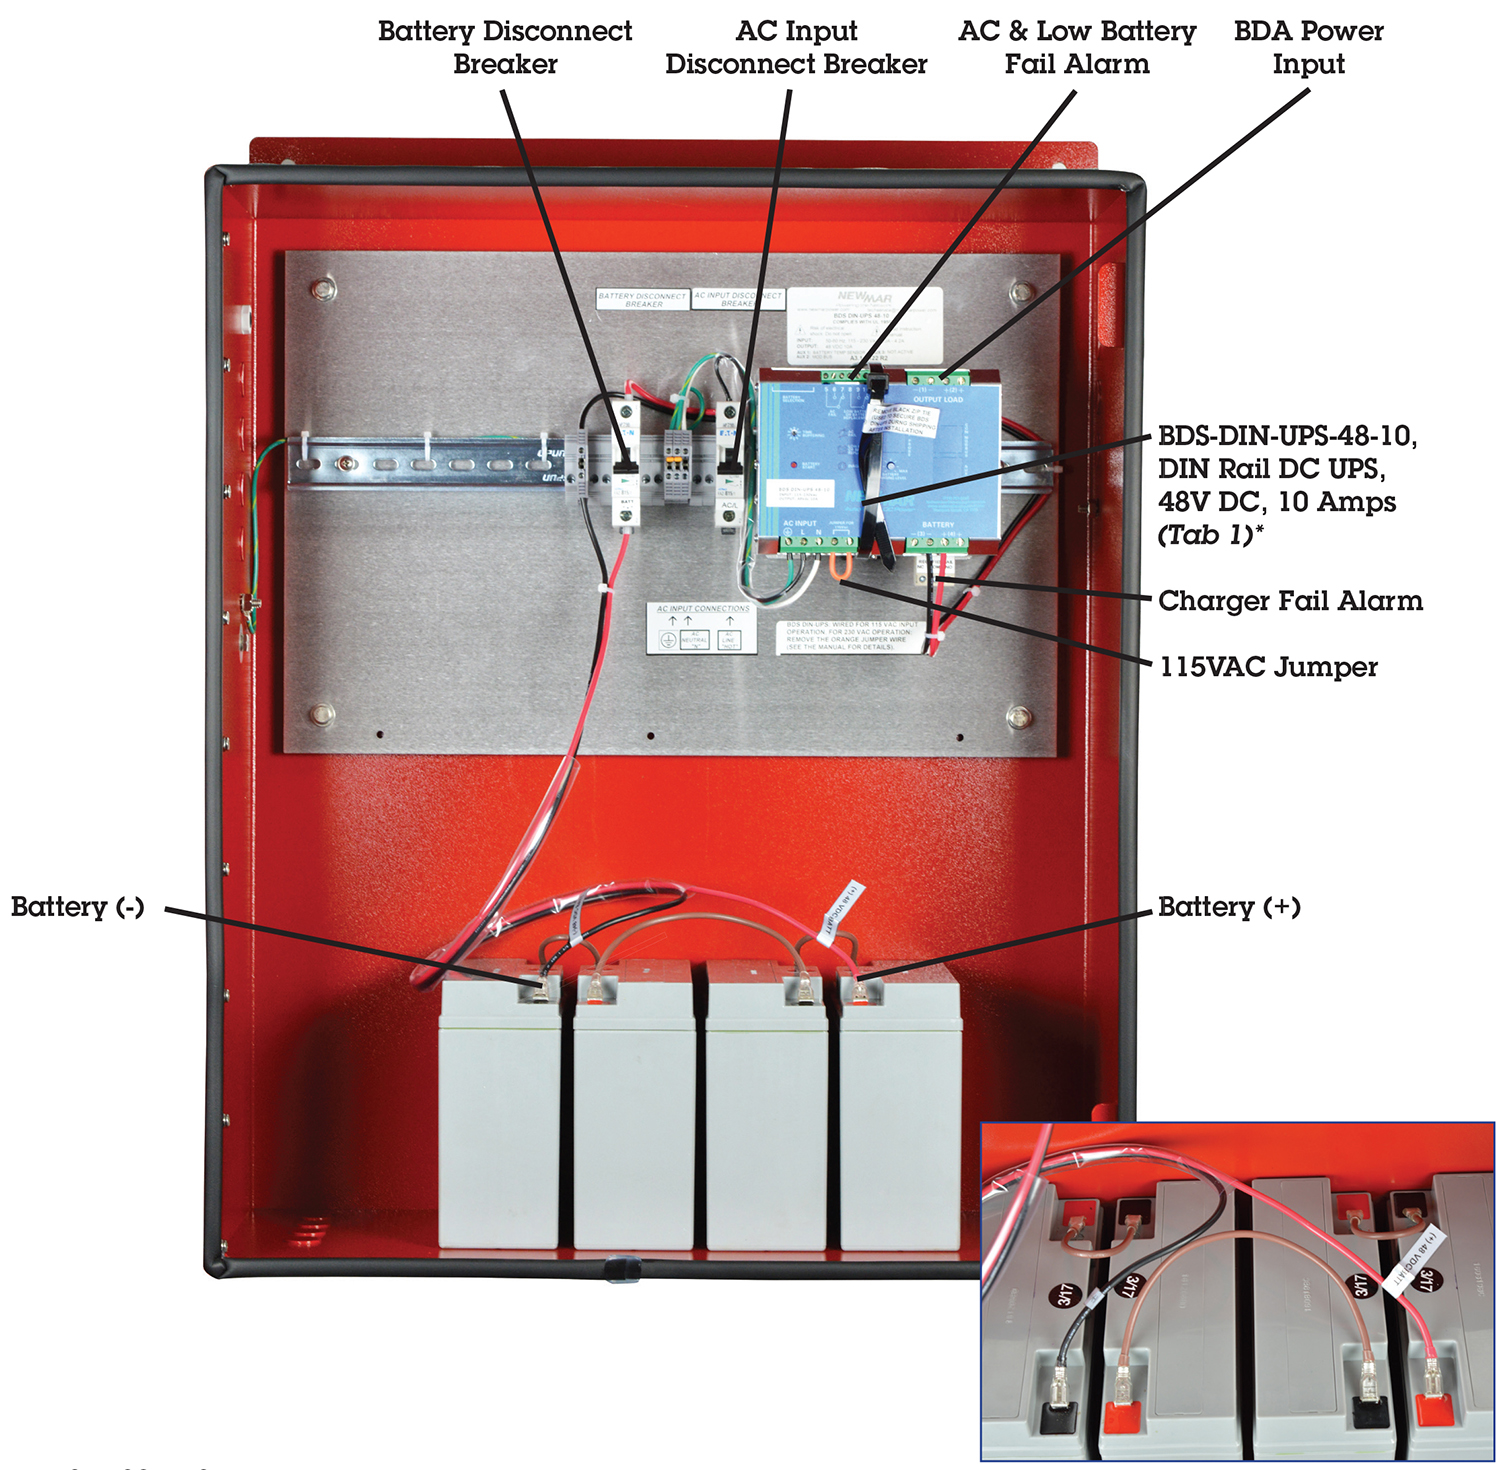 Public Safety Keep Bda Das In Building Networks Ready For Circuit Diagram Additionally Ups Online On Battery Power Pe Series Enclosures Nfpa 1221 Standards 48 Vdc 480